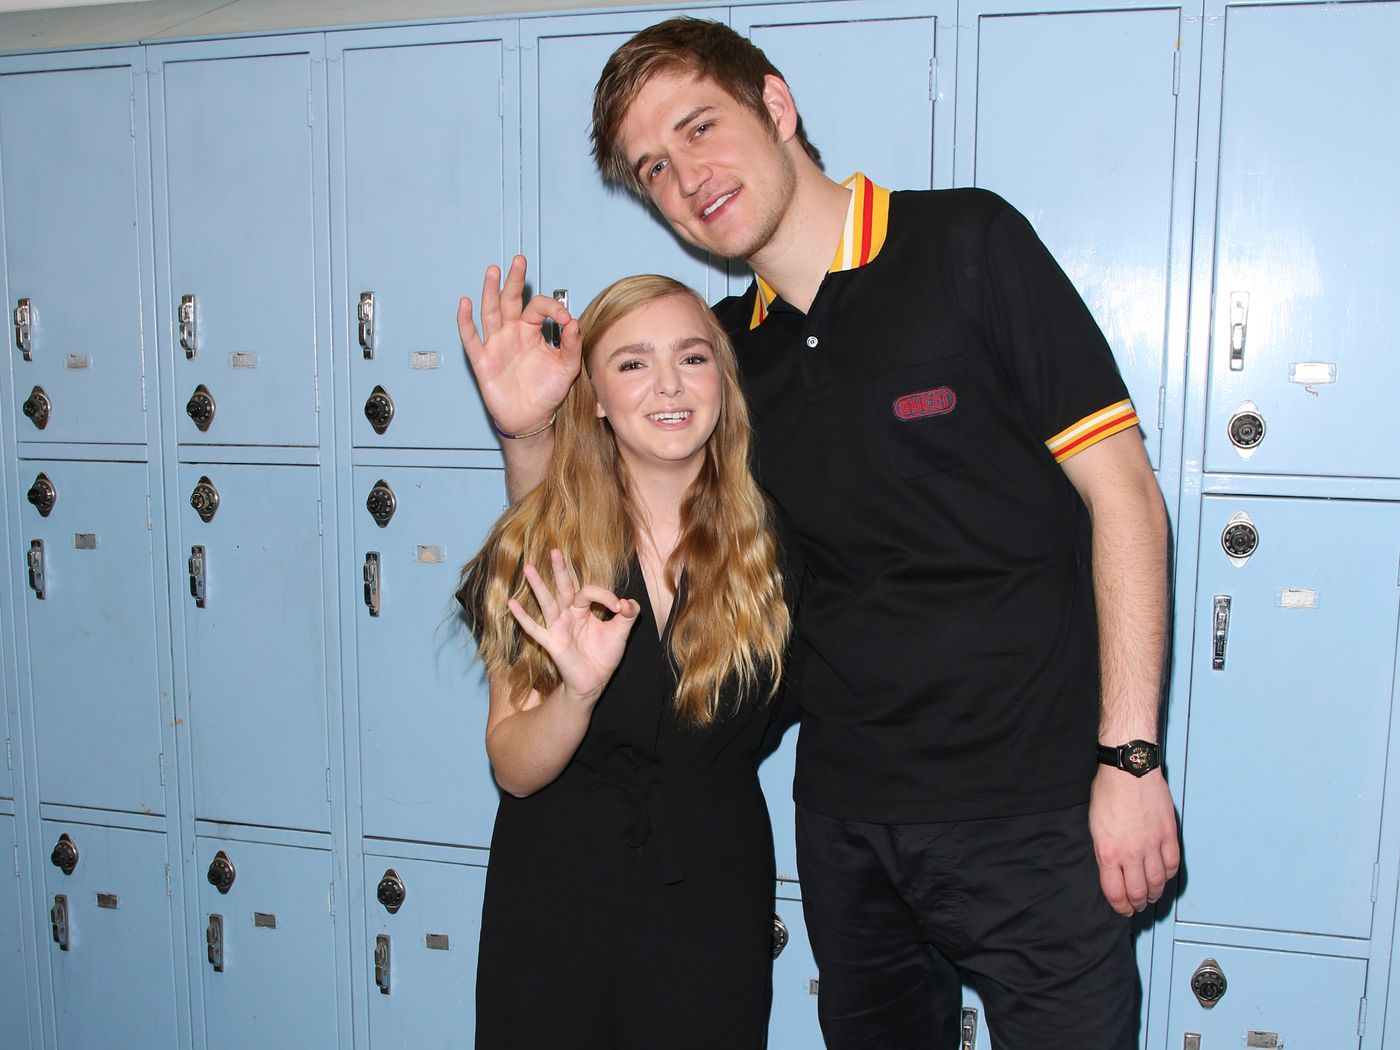 Eighth Grade' director Bo Burnham is happy that a lot of people 'have no  idea who I am' - Vox